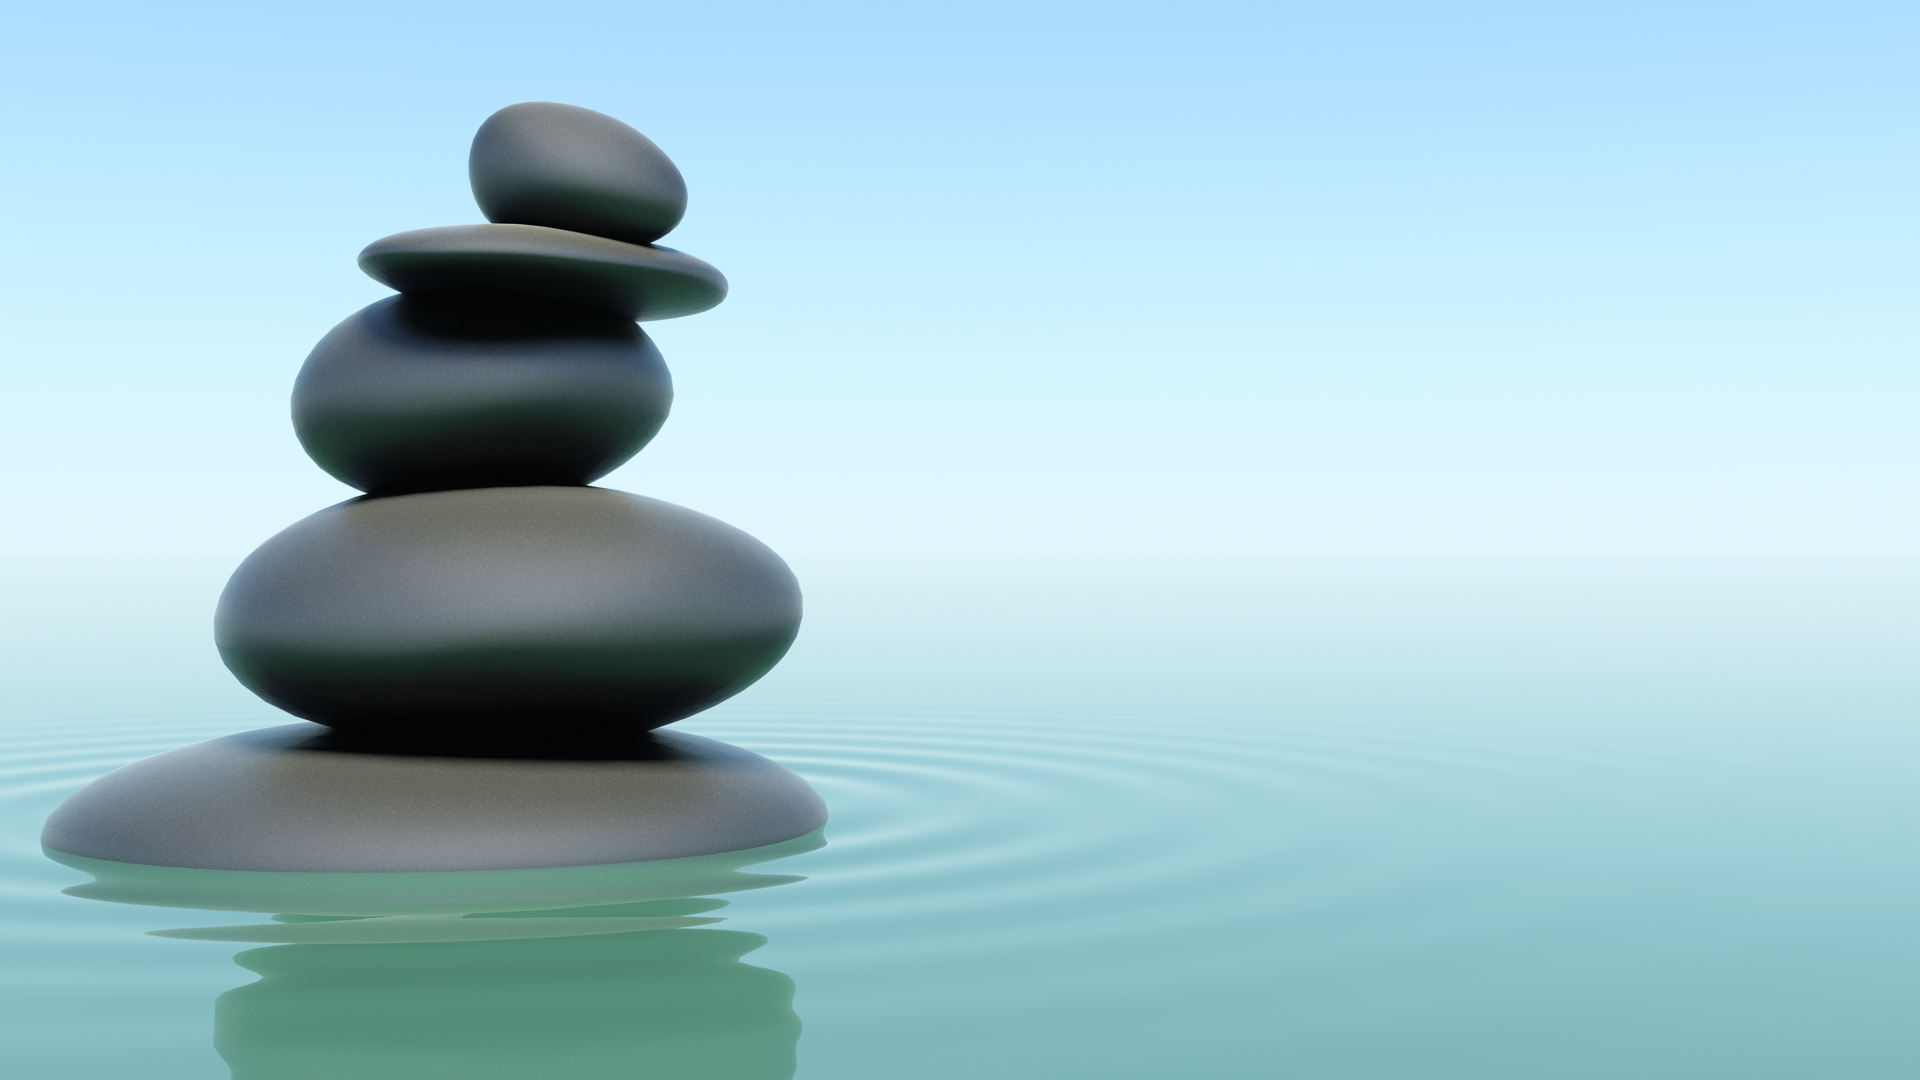 meditation desktop background - HD 1920×1080